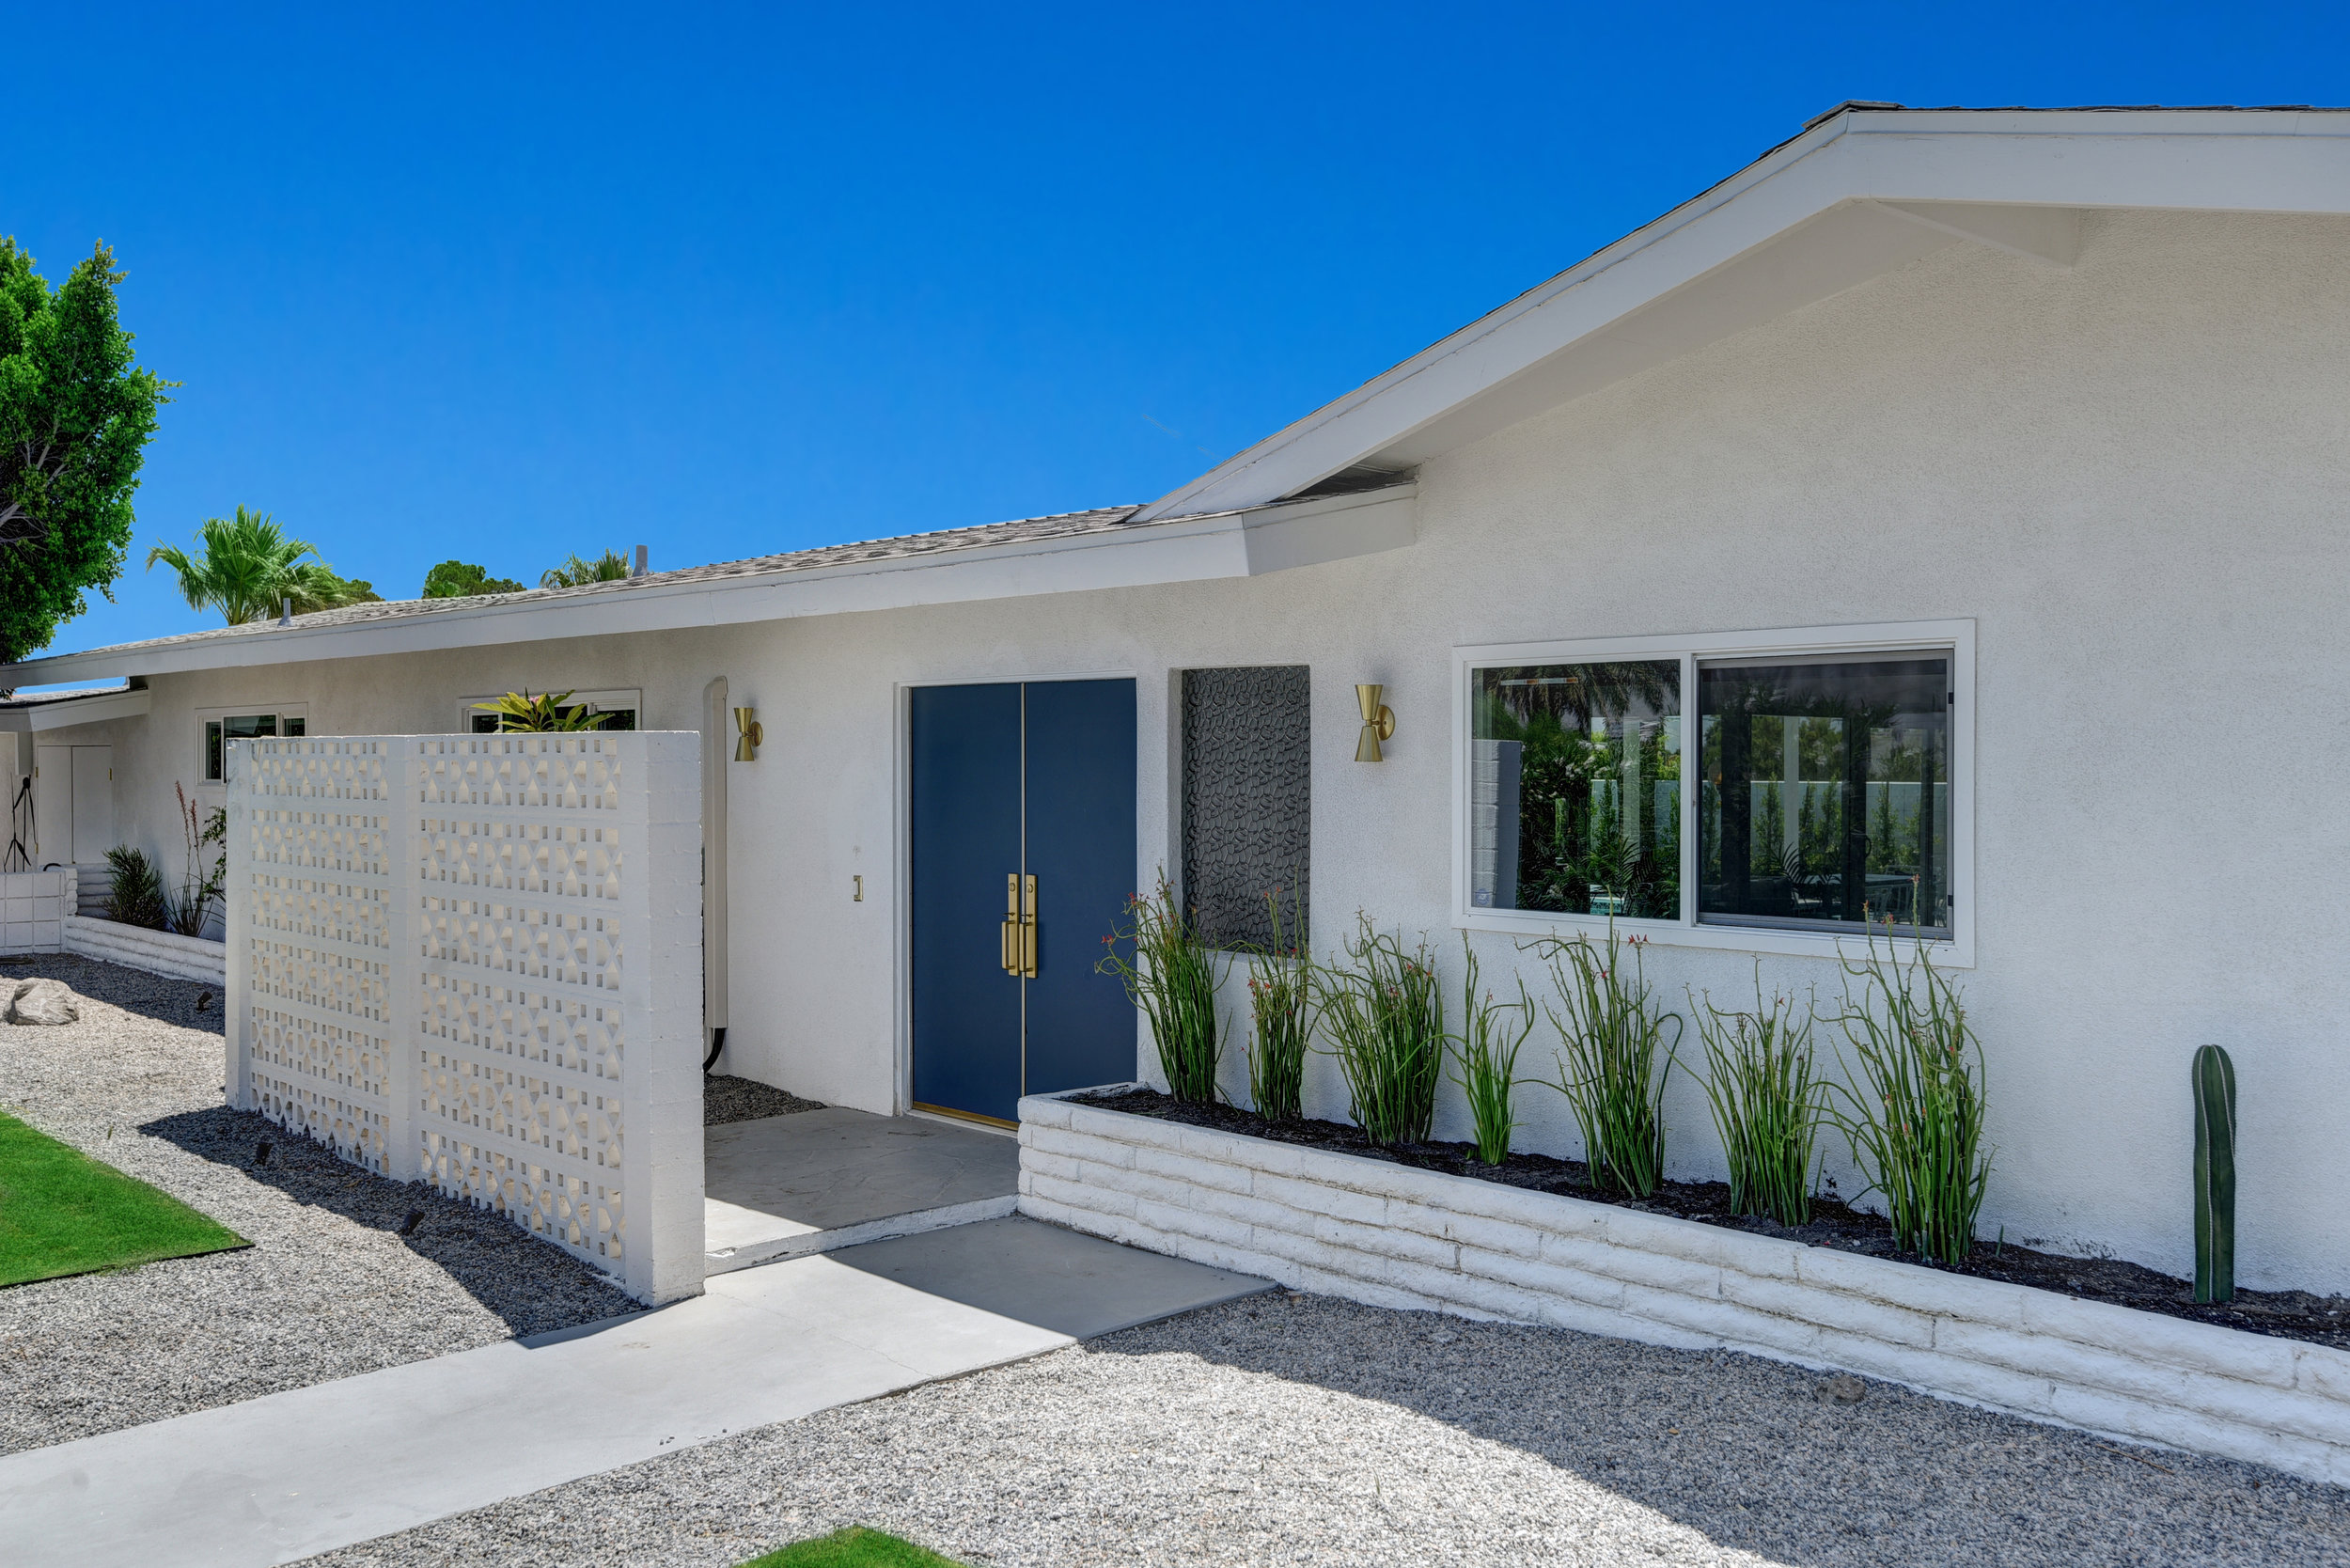 FRONT ENTRY WITH BREEZE BLOCK.jpg